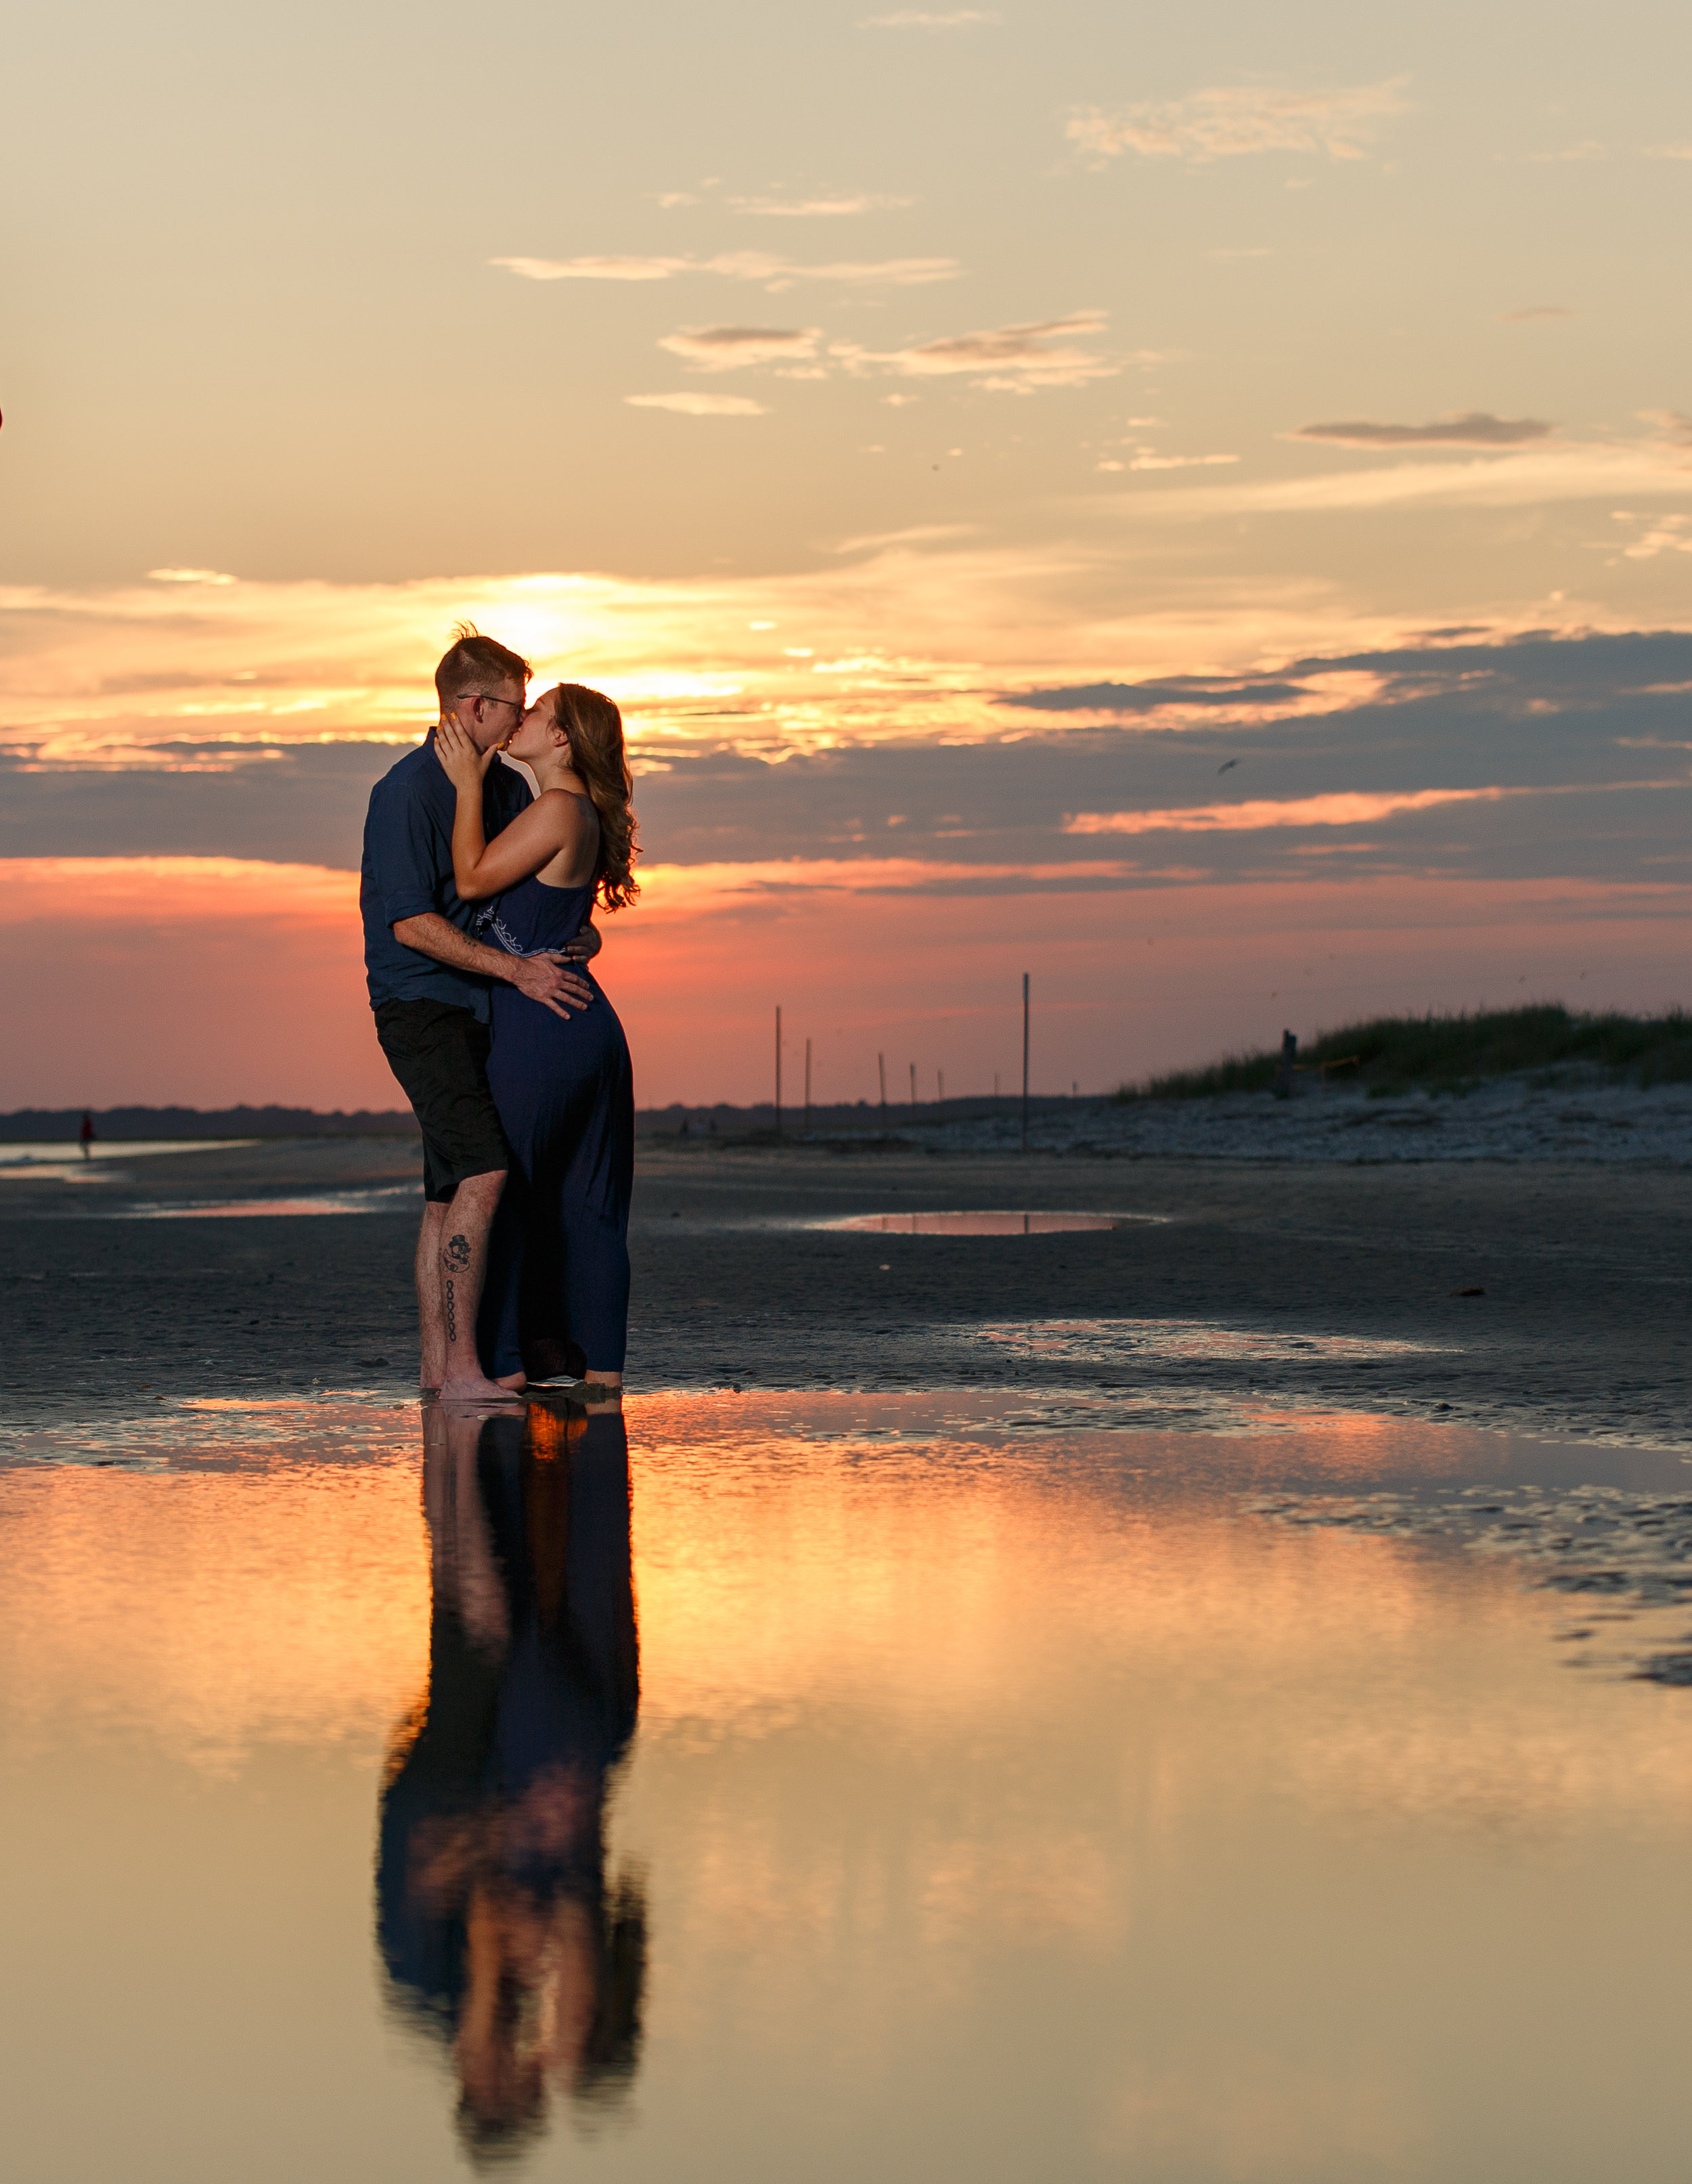 Couple With Sun and Reflection